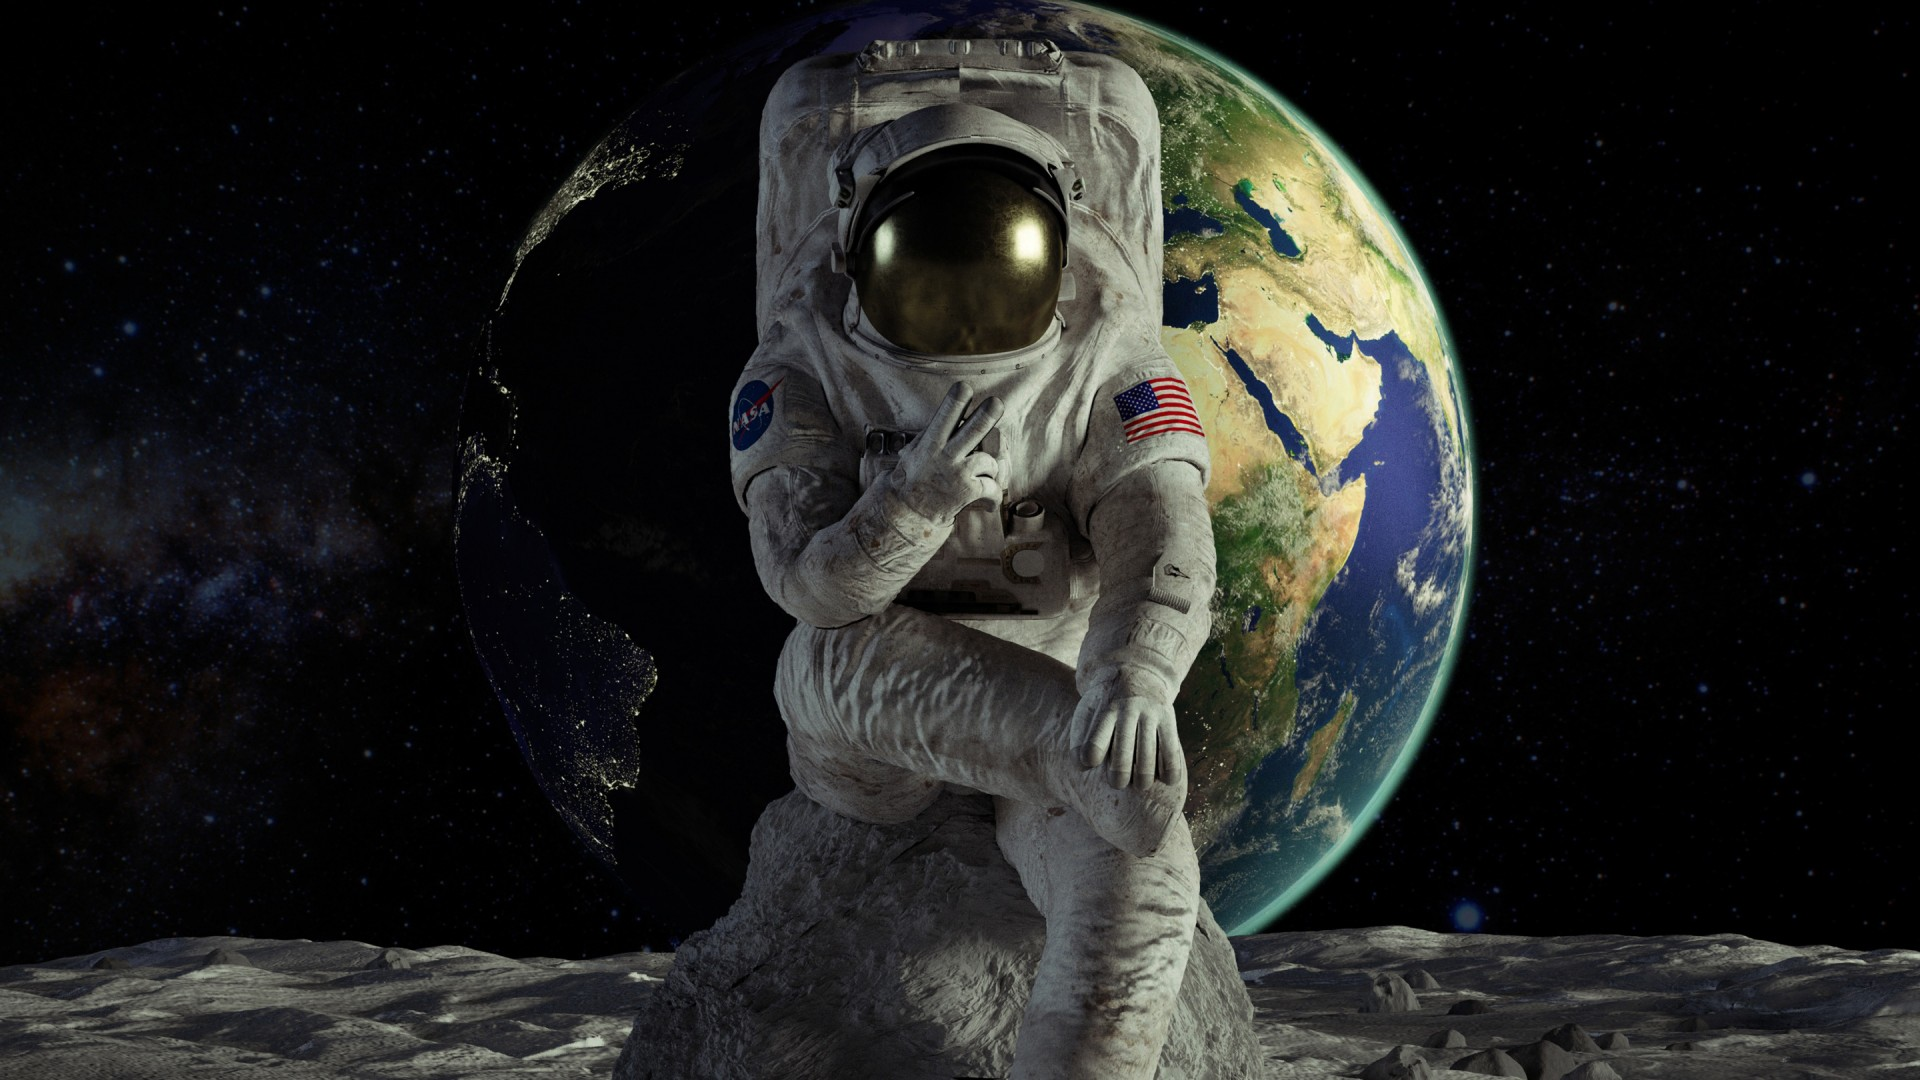 3d Cute Wallpapers Download Astronaut Wallpapers Hd Wallpapers Id 27236